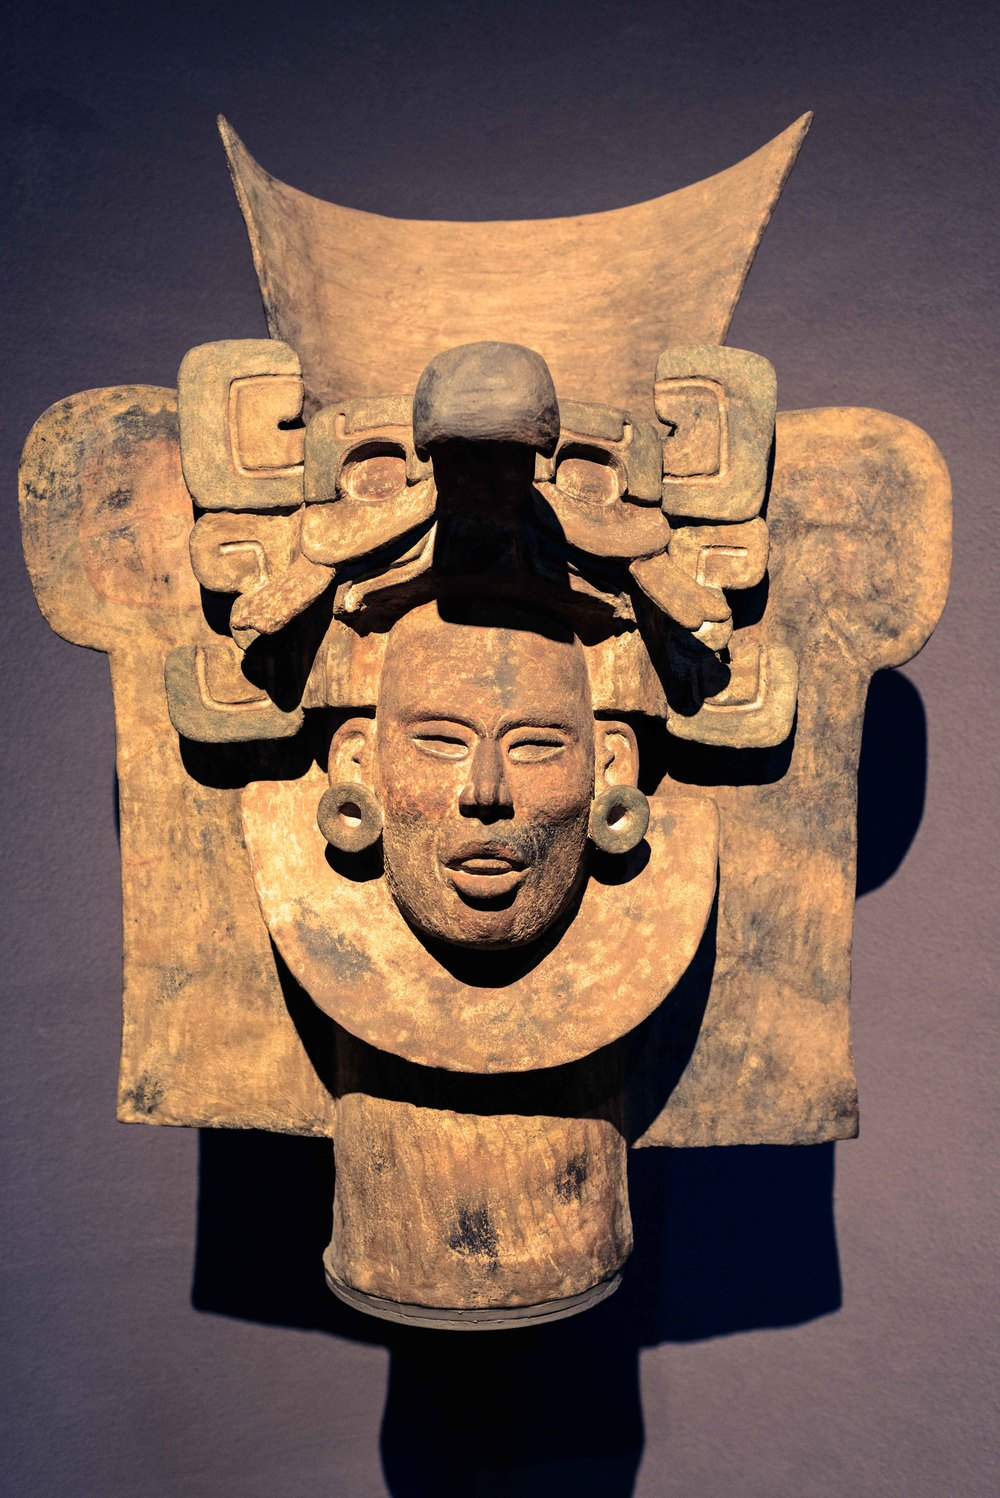 Urn. This piece shows a strong Mayan influence, apparent in the facial features depicted; an apparent cranial deformation accentuates a headdress which represents the deity known as ave del pico ancho. Tomb 77, Monte Alban, Mexico.